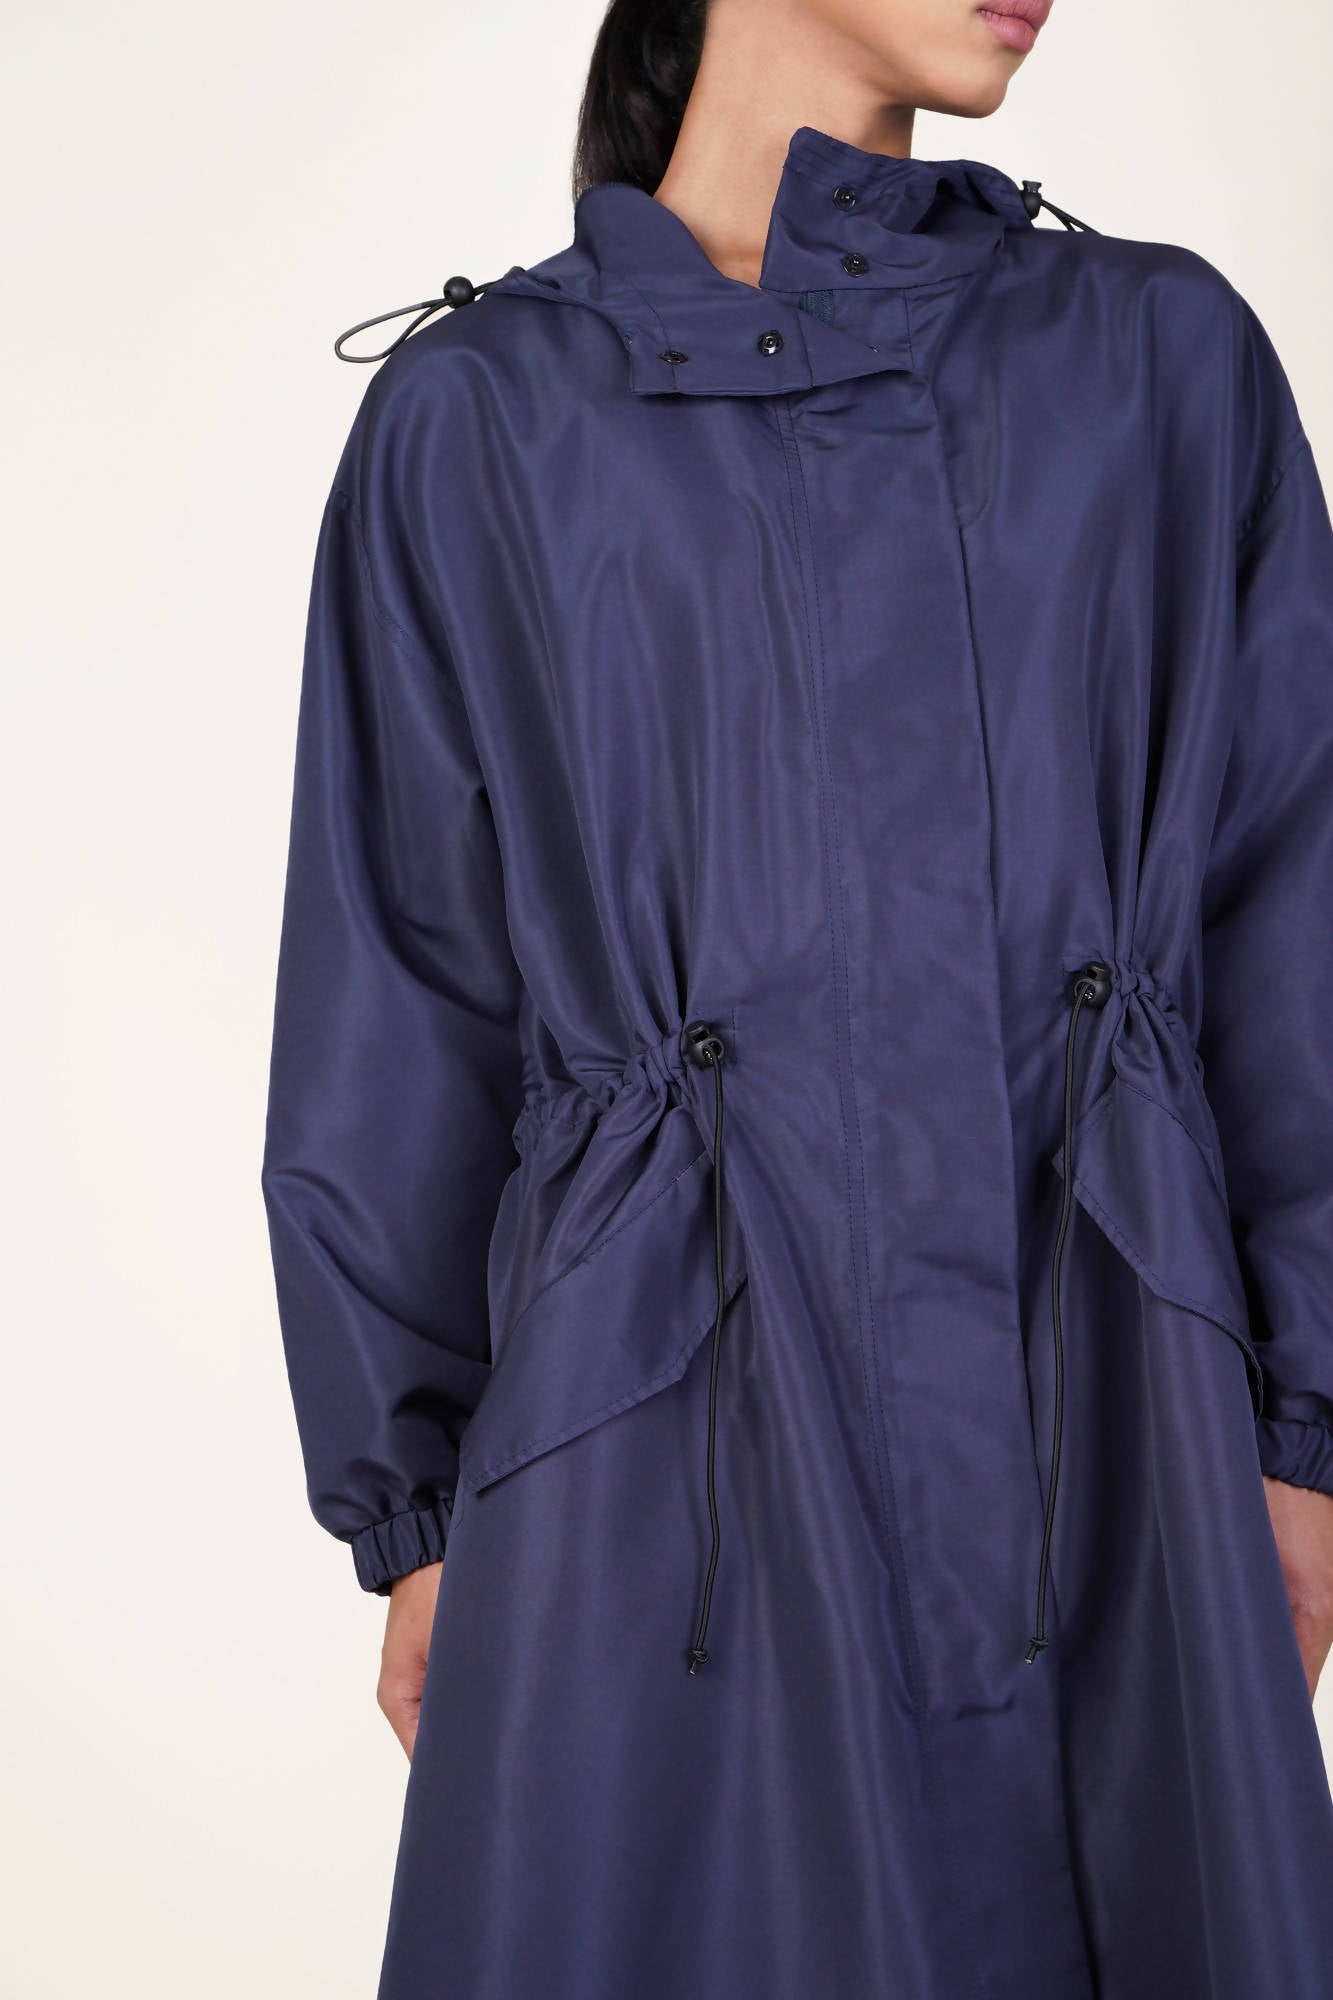 Protective Outerwear Design 3 in Navy